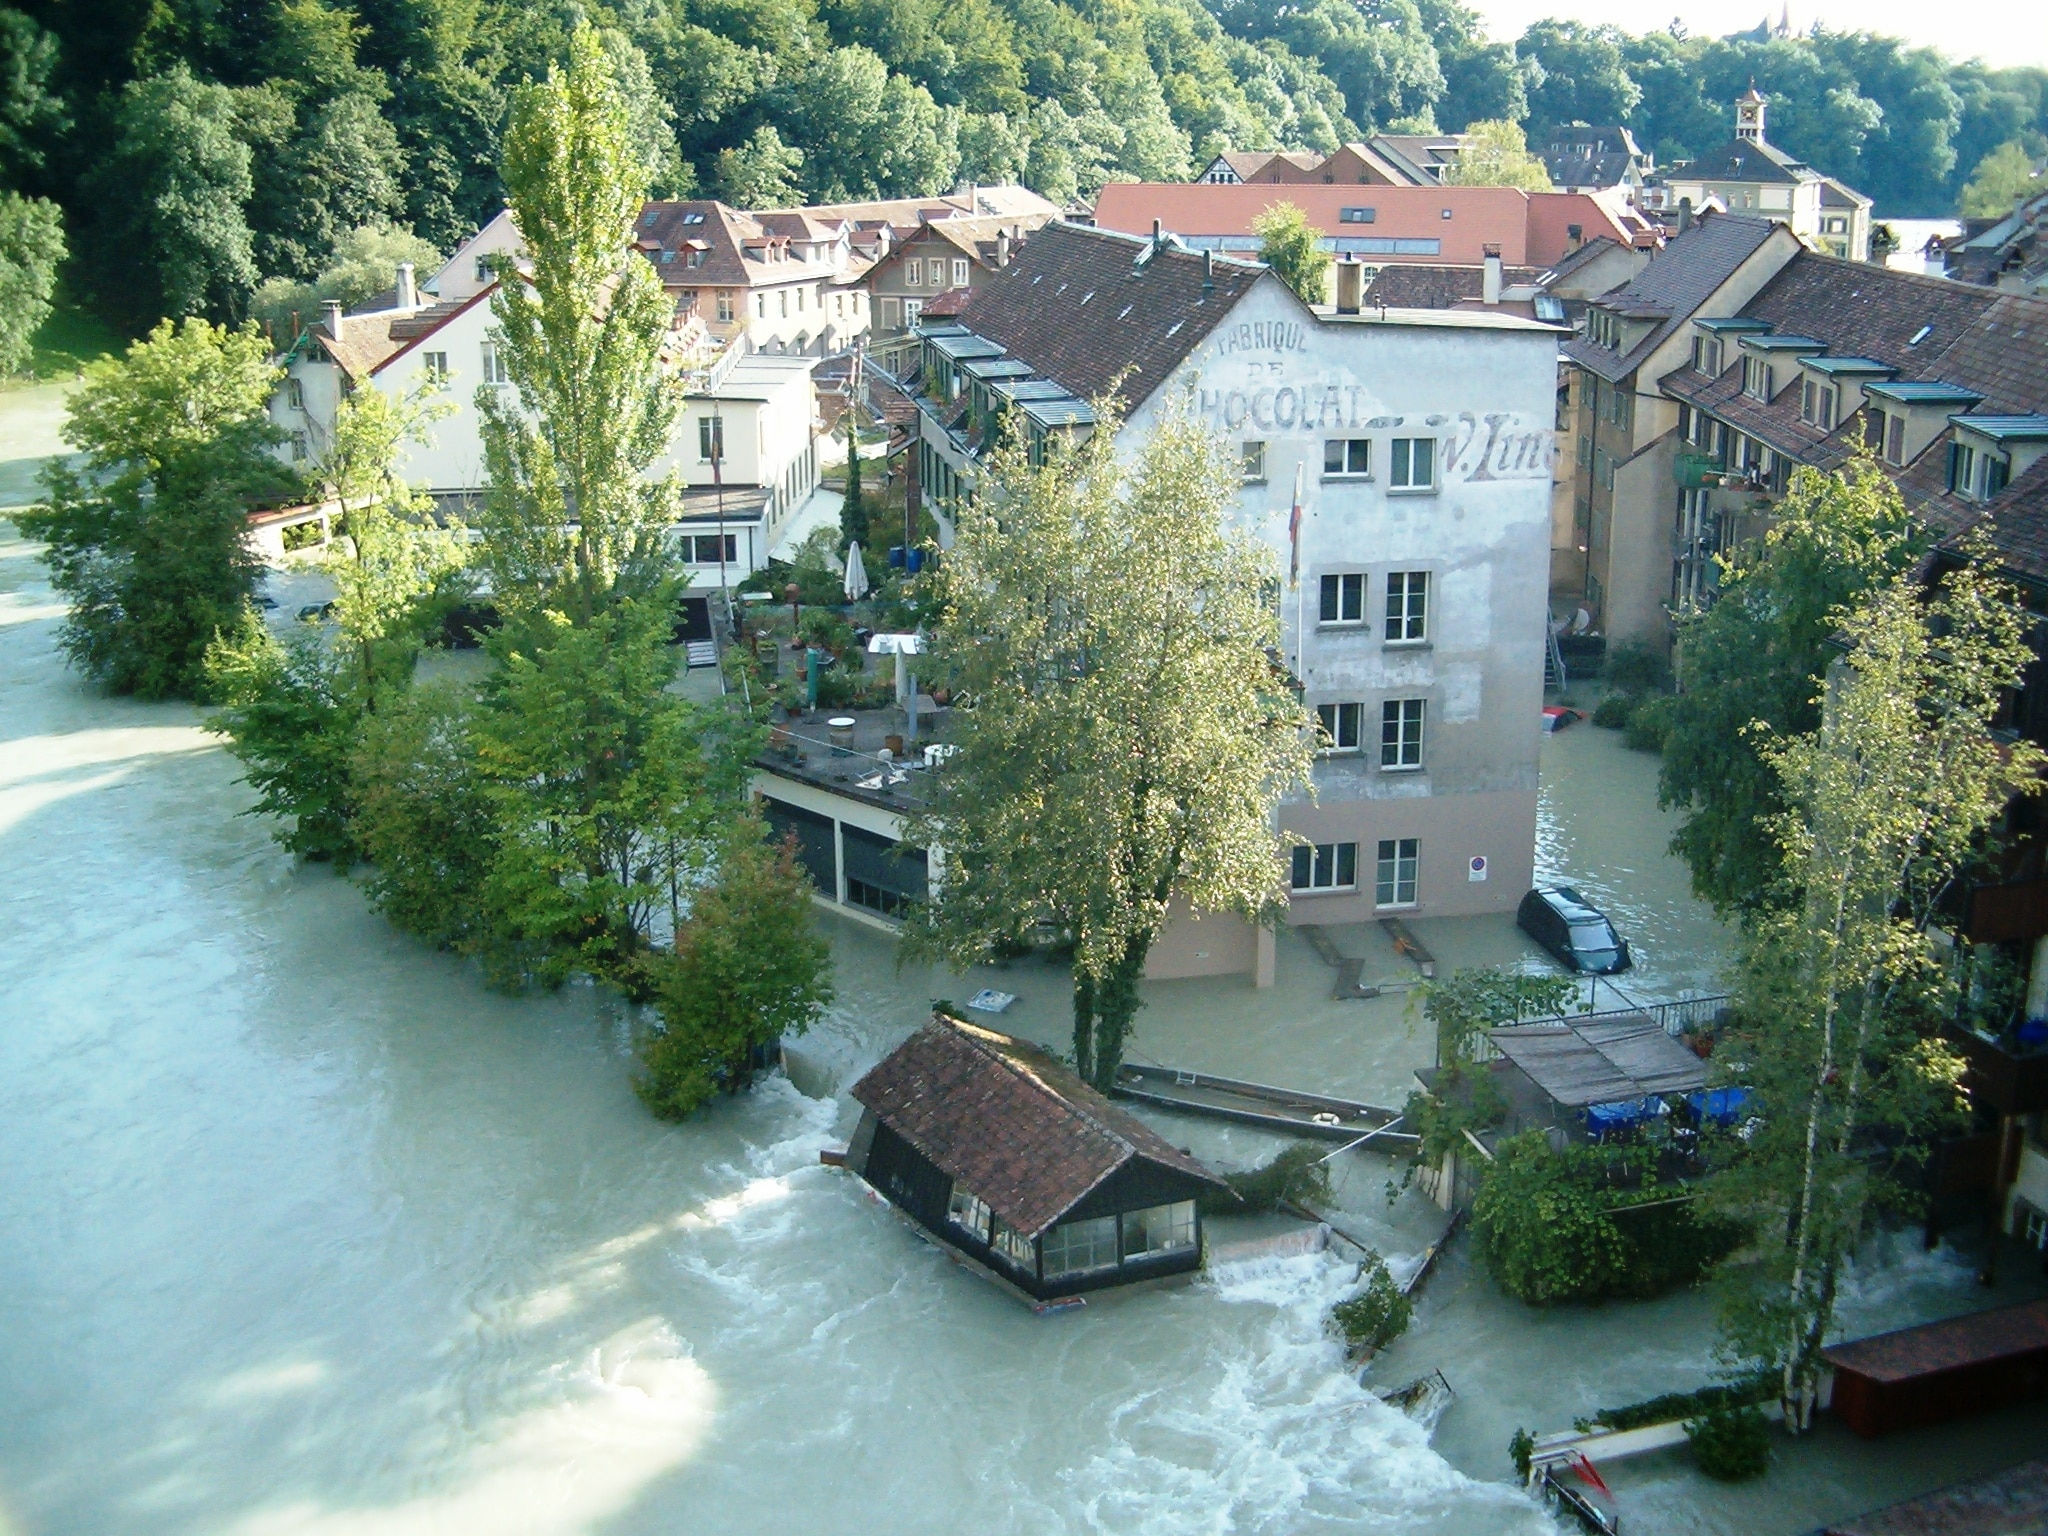 The Matte neighbourhood in Bern is often flooded when the Aare River bursts its banks.